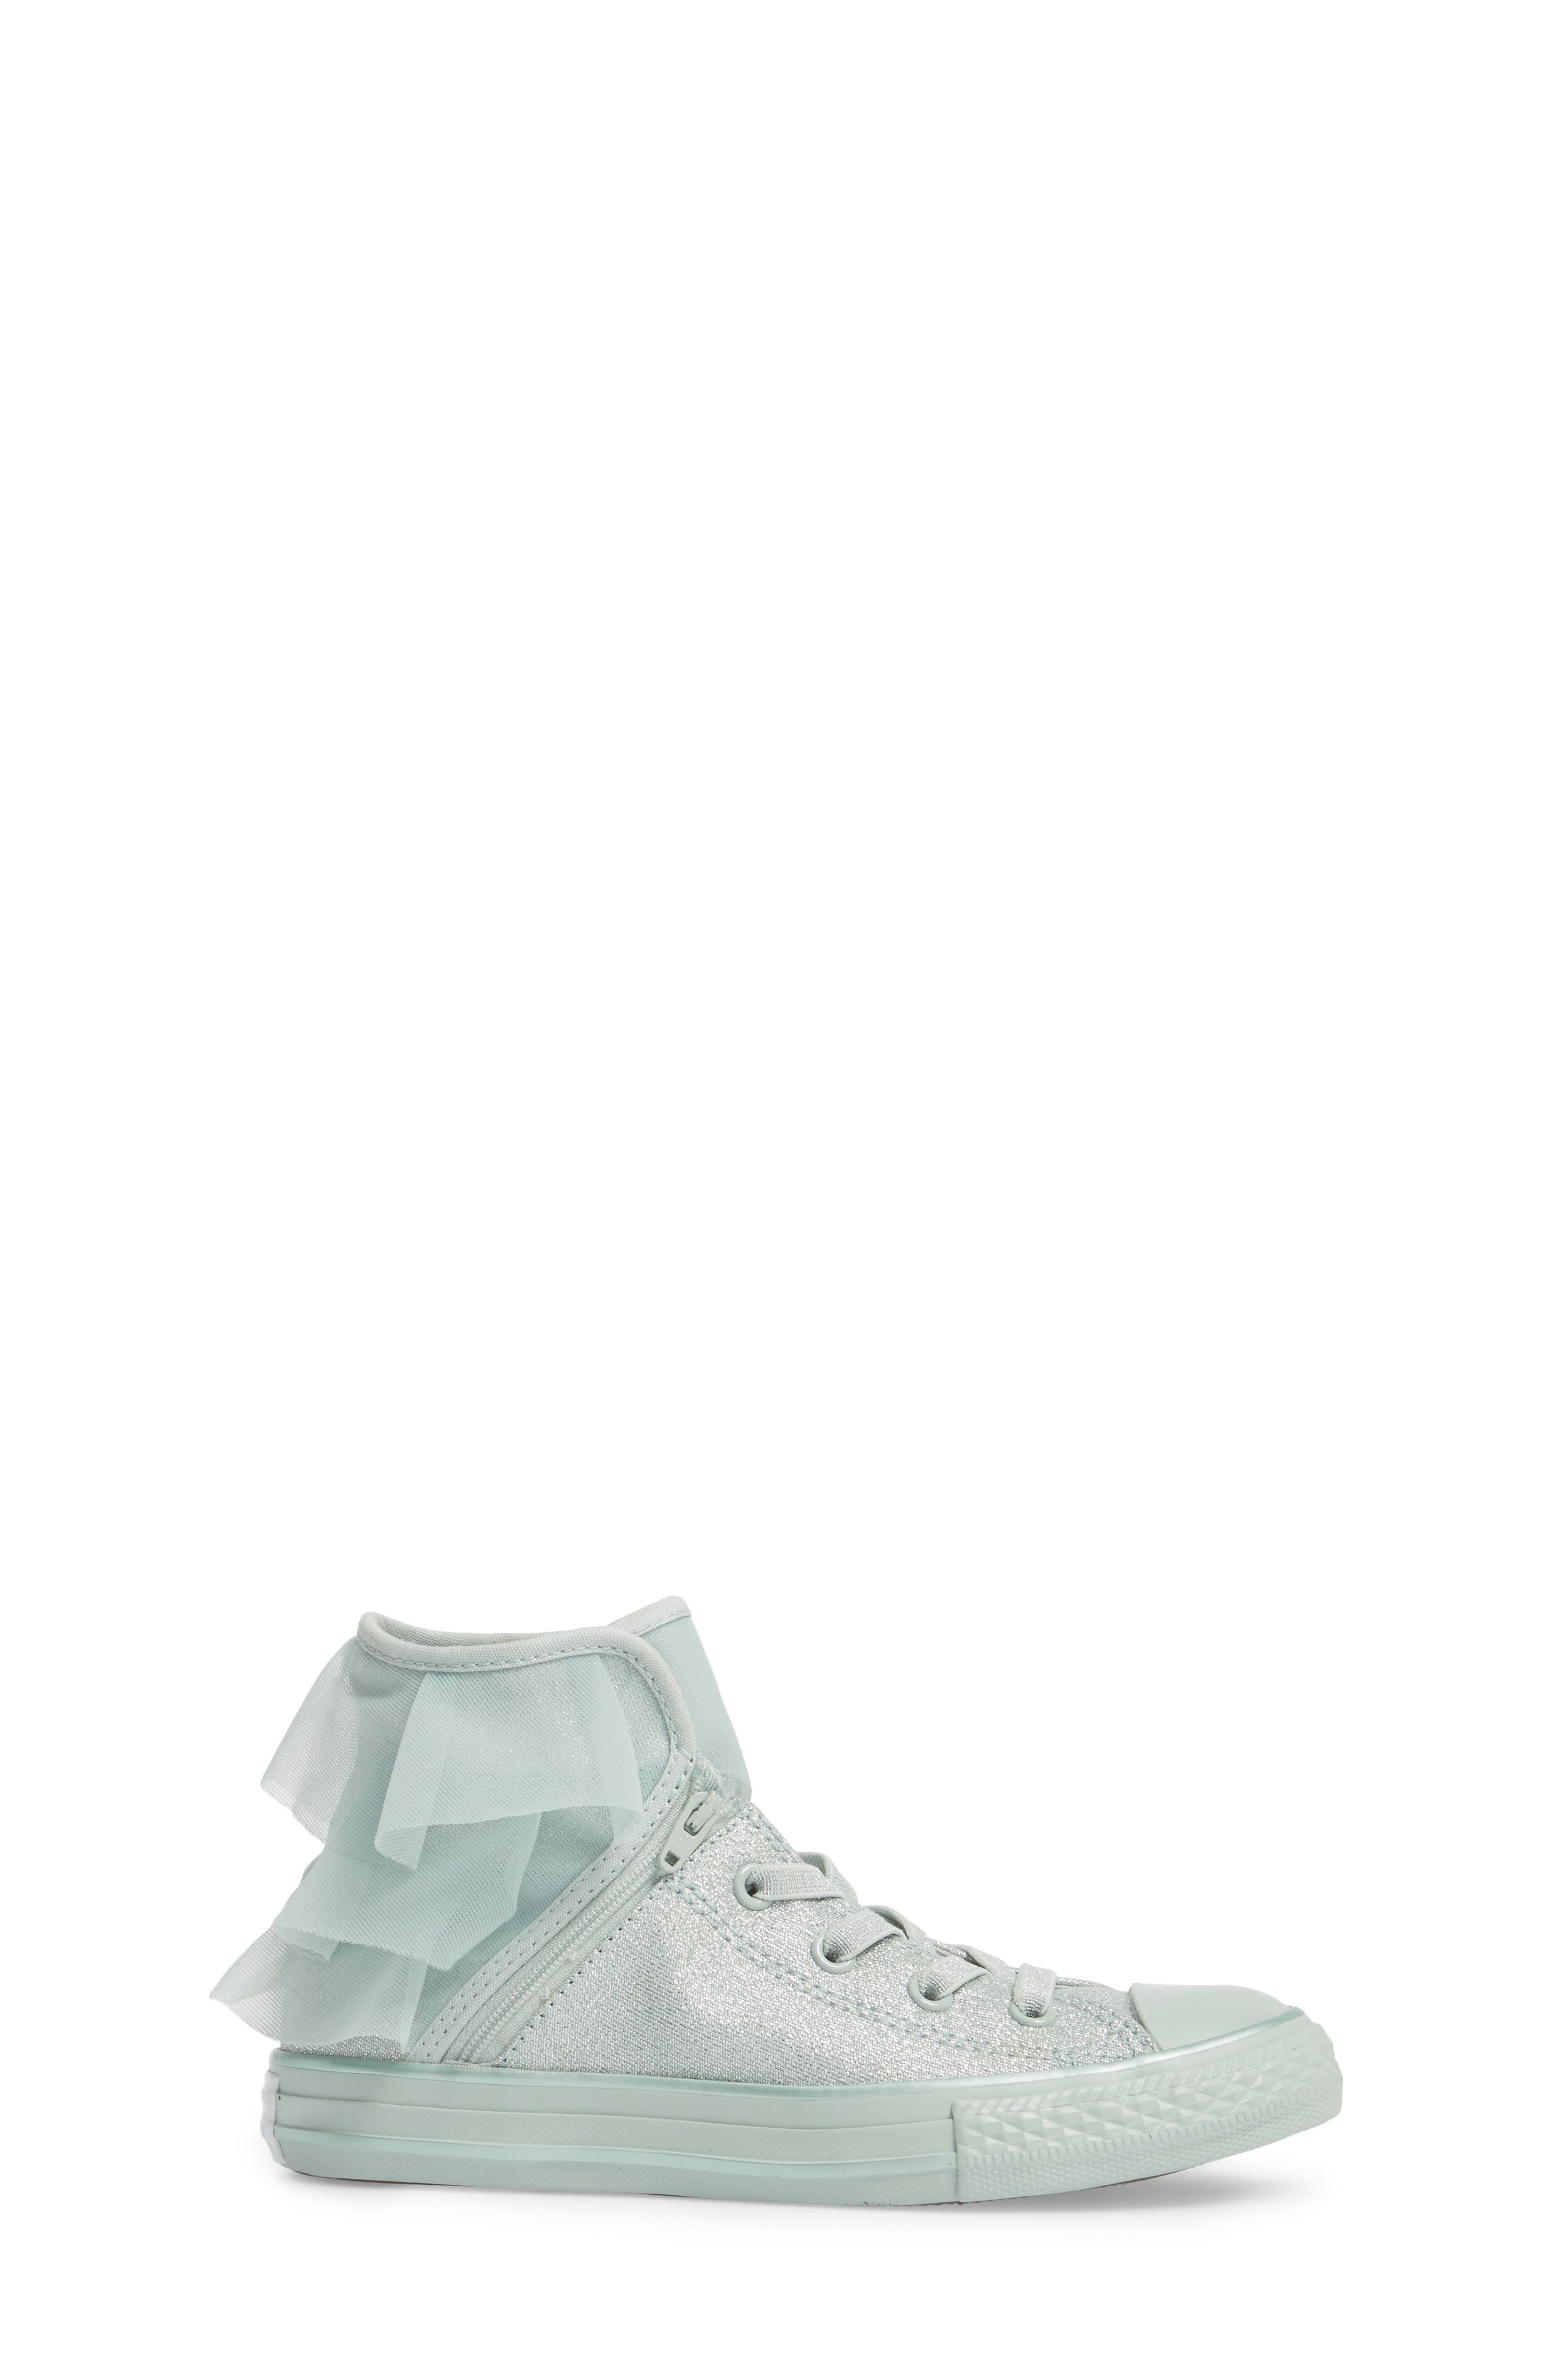 All Star<sup>®</sup> Mono Shine Party High Top Sneaker,                             Alternate thumbnail 3, color,